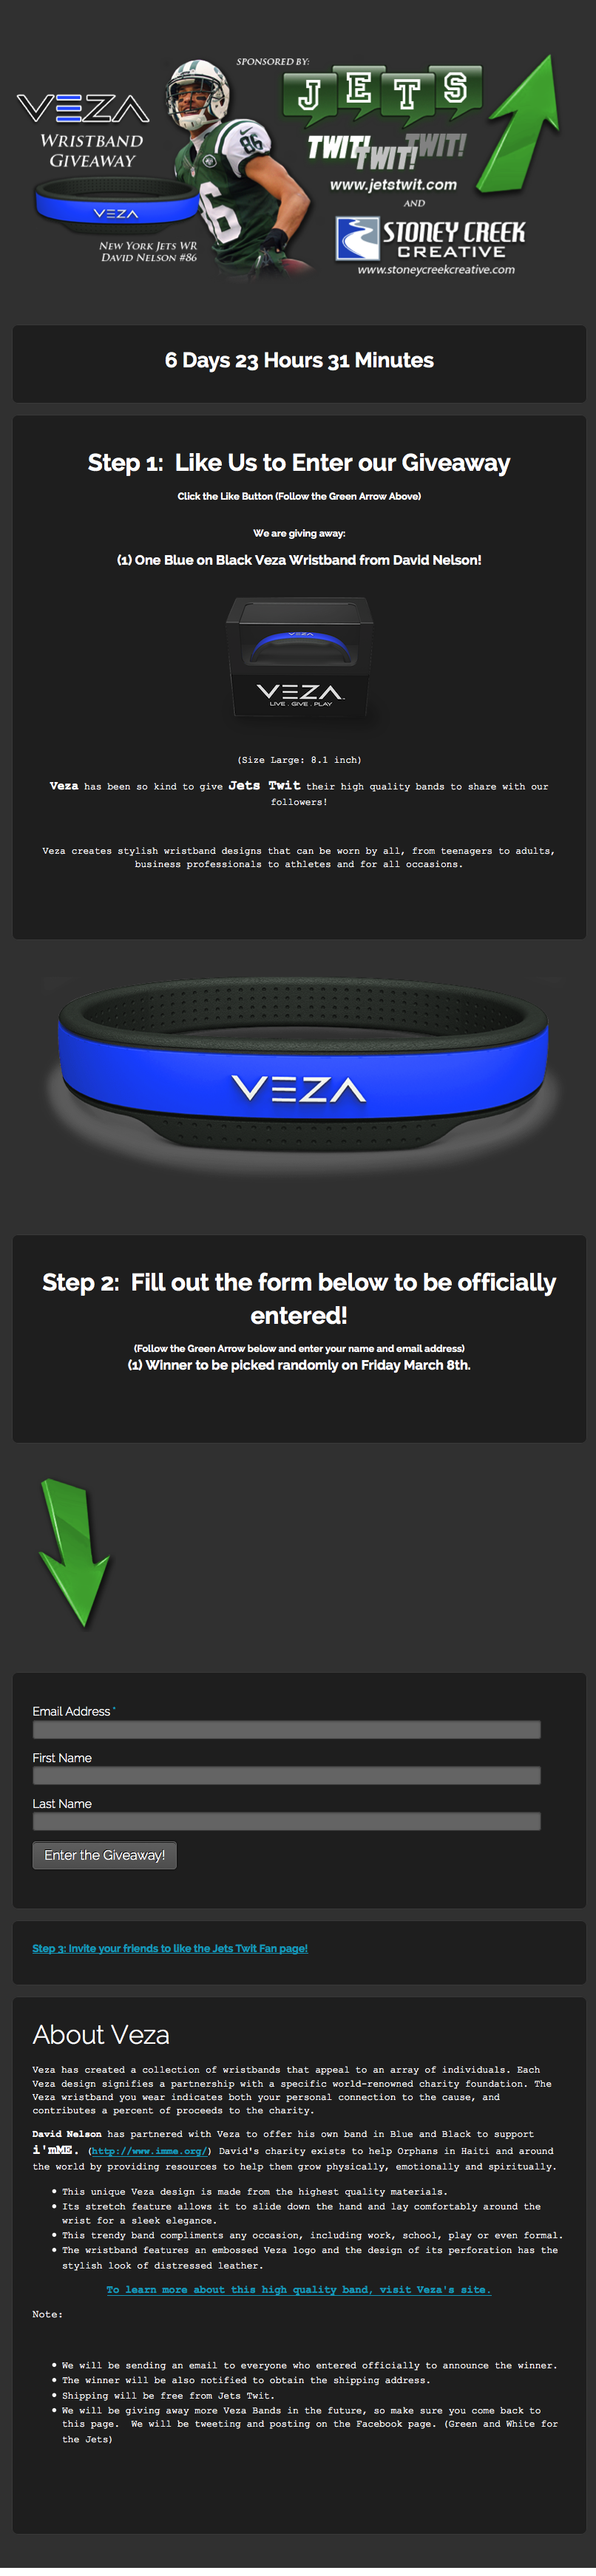 Veza-signup-giveaway